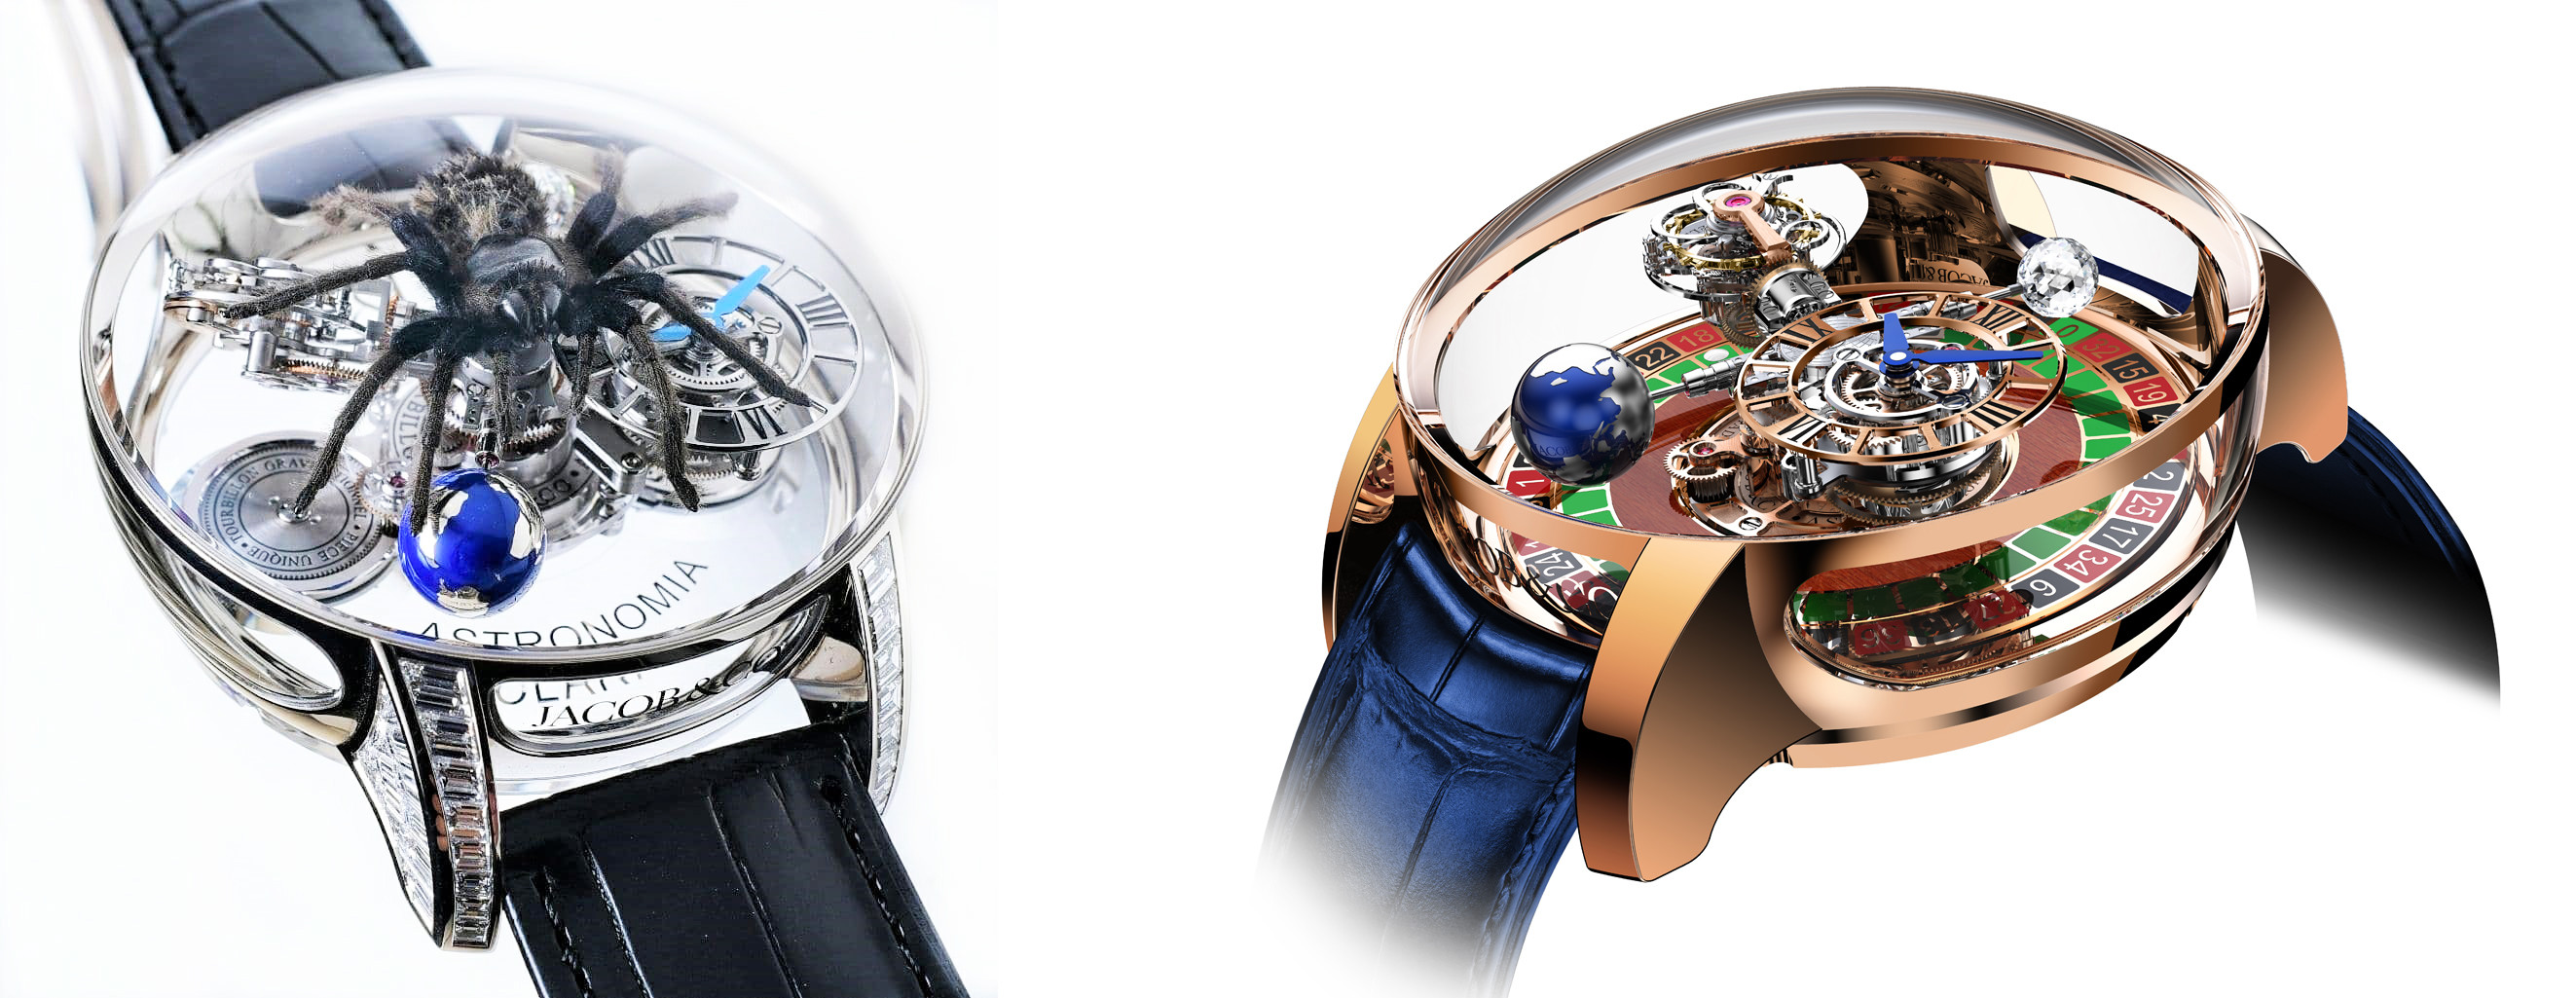 Astronomia Tourbillion Spider and Astronomia Tourbillion Gambler